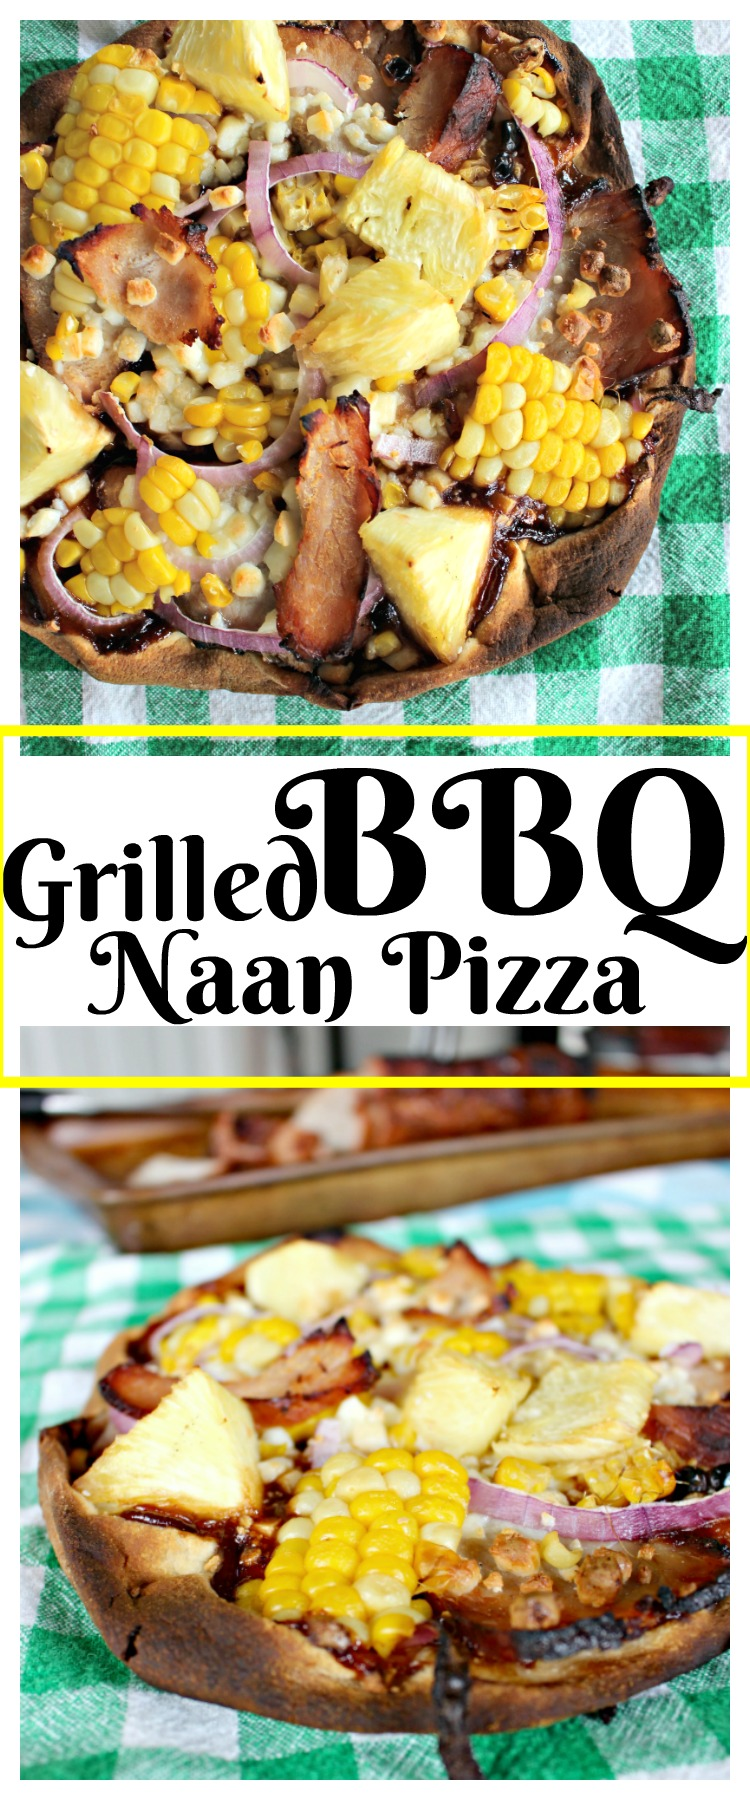 Love to Grill in the Summer? Make This Grilled BBQ Naan Pizza! #RealFlavorRealFast #Ad